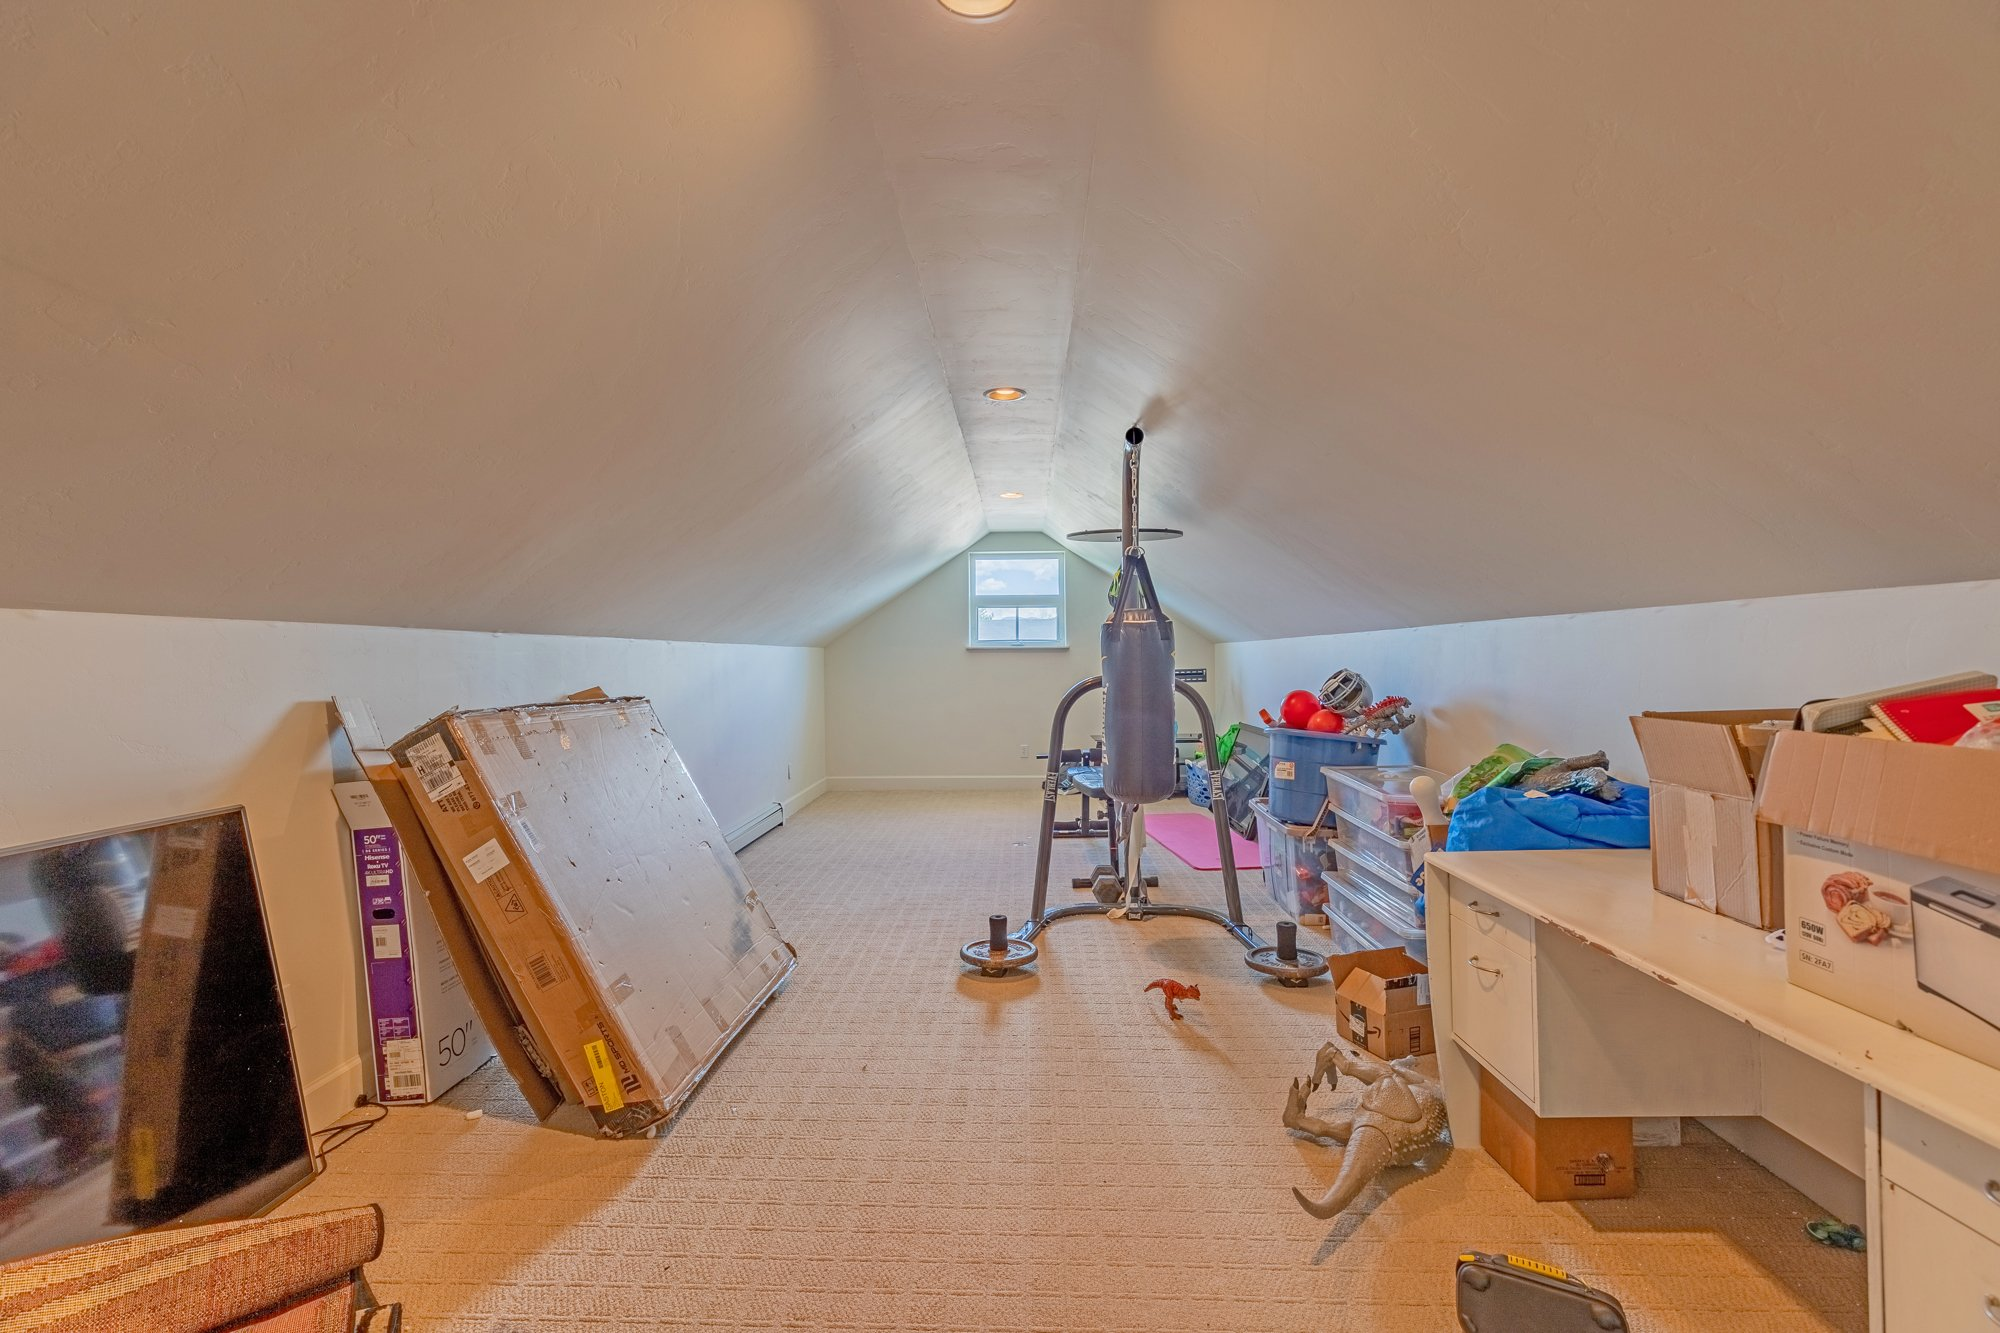 Upstairs Bonus Room - 2924 Lost Creek Rd S. Montrose, CO 81401 - Atha Team Real Estate Agents